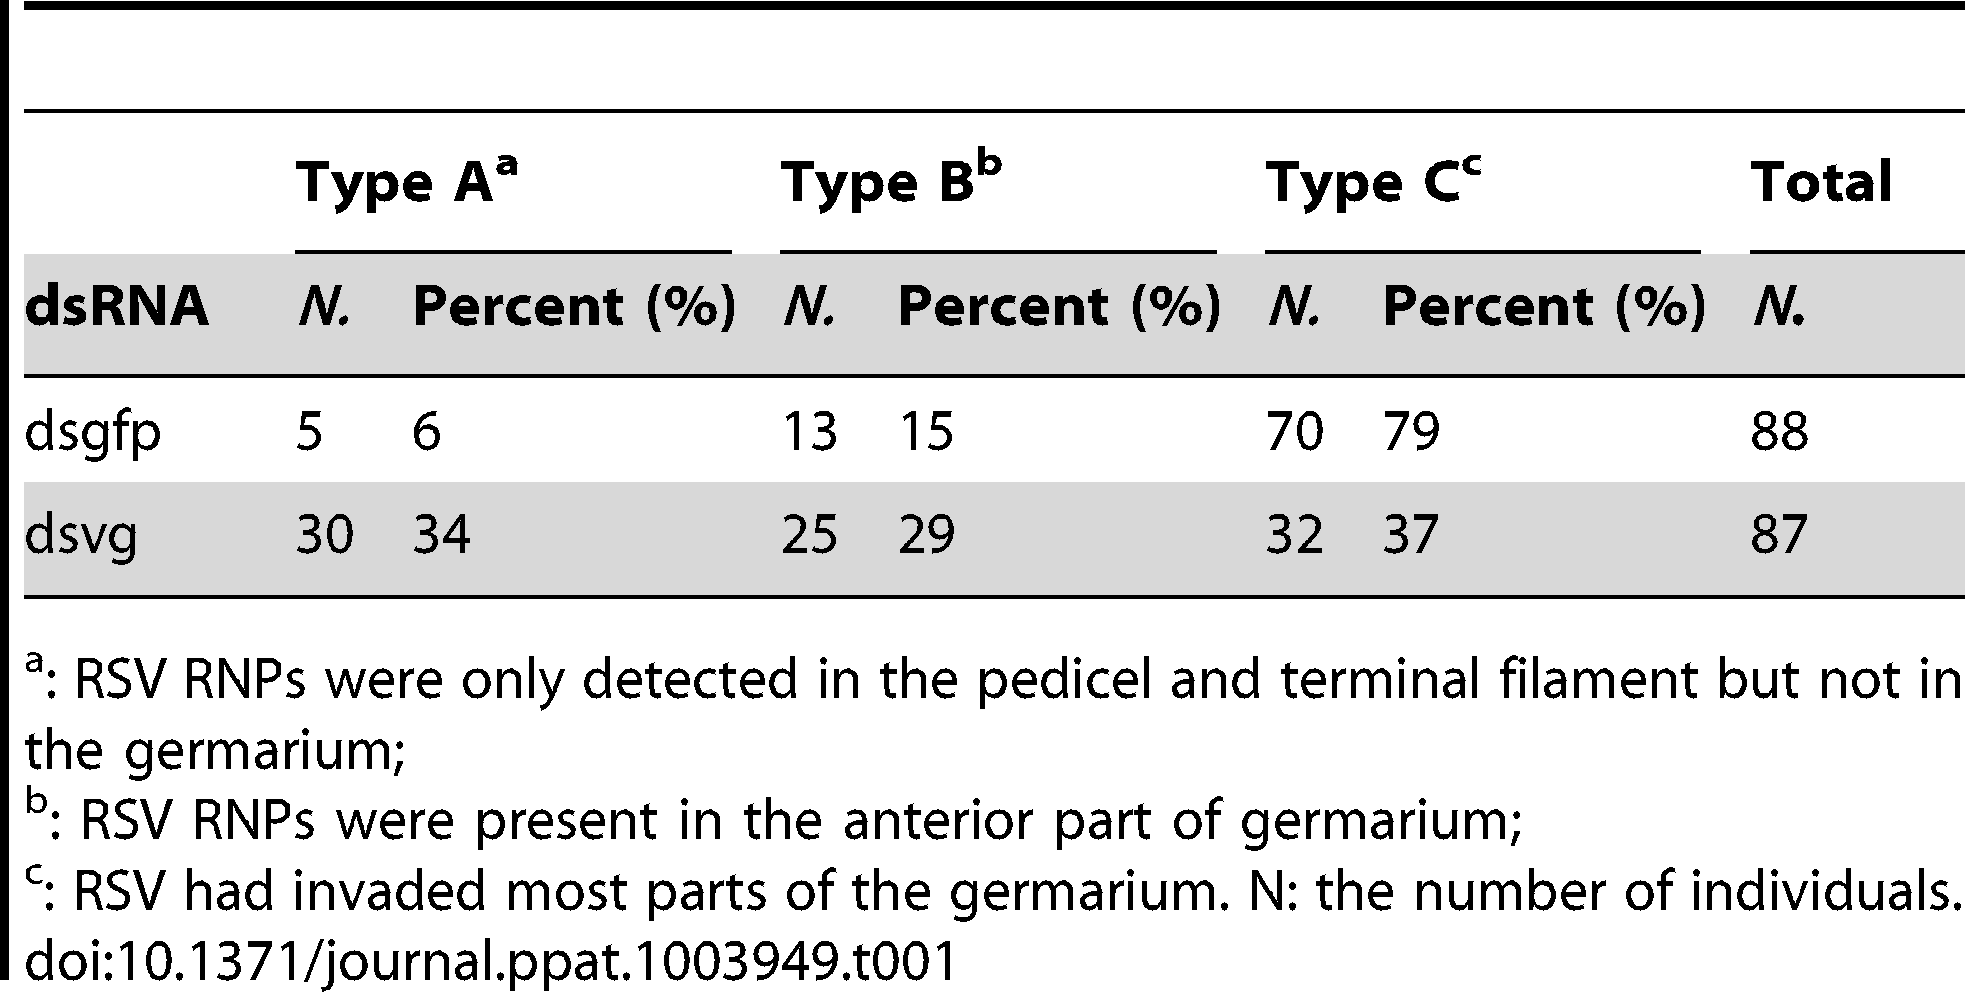 Percentage of RSV-infected ovaries with virus in the three location types from insects injected with dsgfp or dsvg dsRNAs.